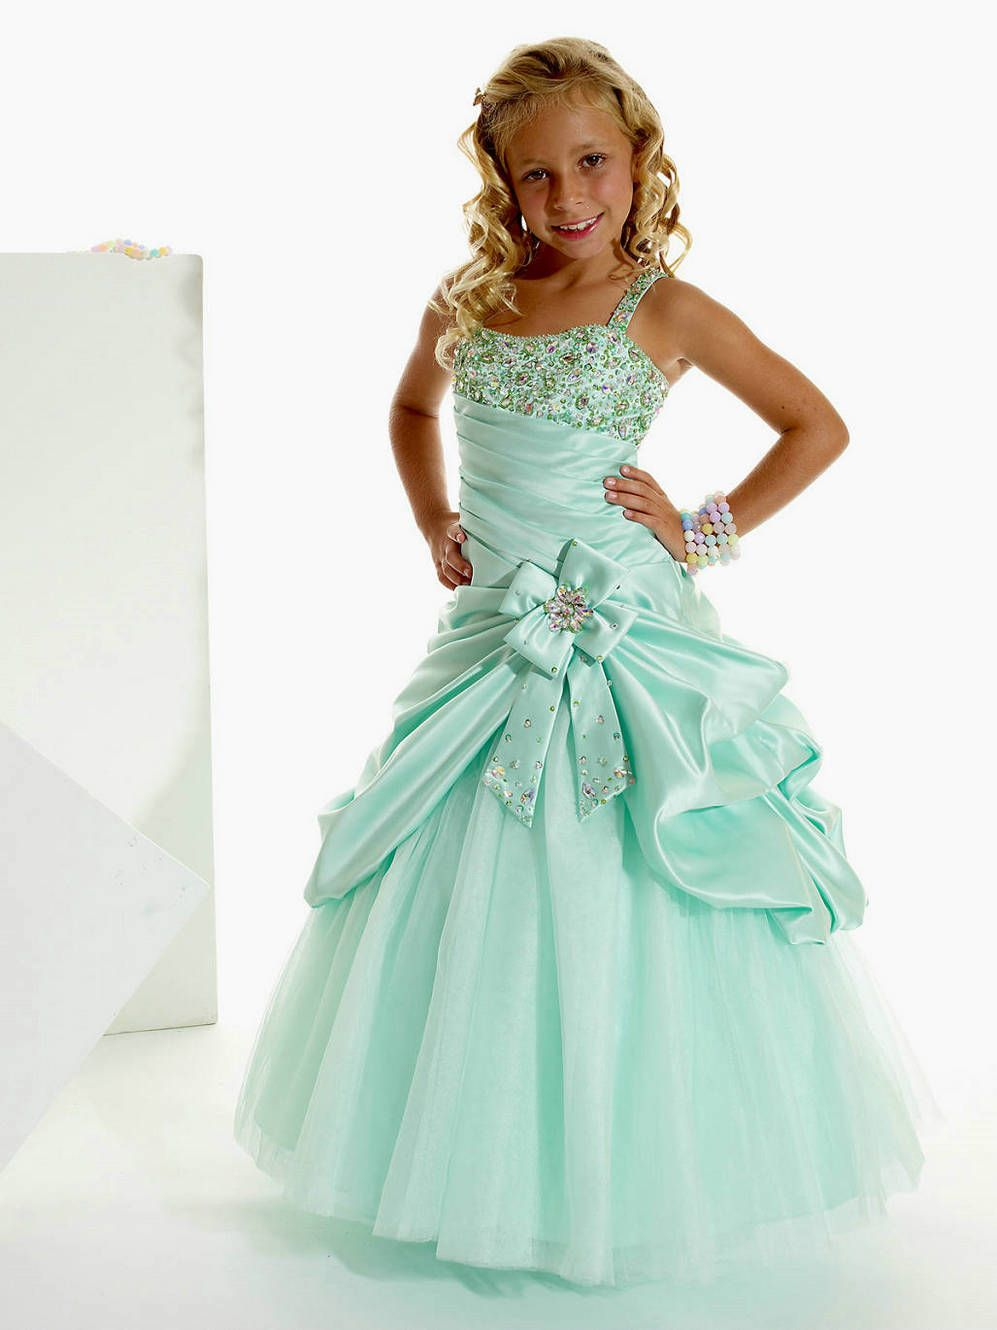 Princess Dress: HIT or MISS | Prinzessinnenkleider und Kind